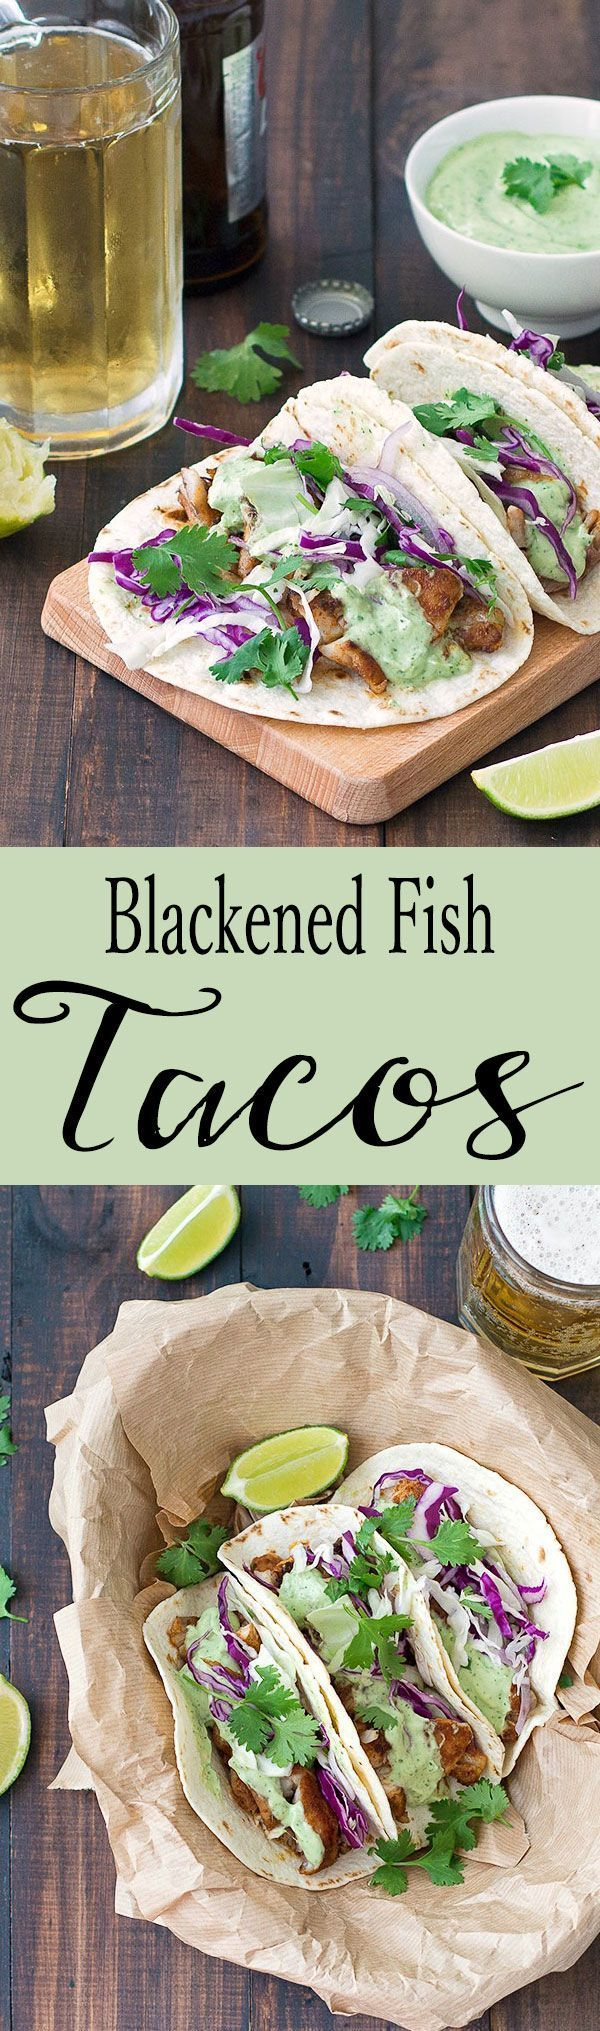 These blackened fish tacos come together in under 30 minutes and make a delicious weeknight meal. Spiced white fish is folded into warm tortillas, topped with shredded red cabbage and drizzled with a creamy avocado sauce. You can make this easy recipe wit